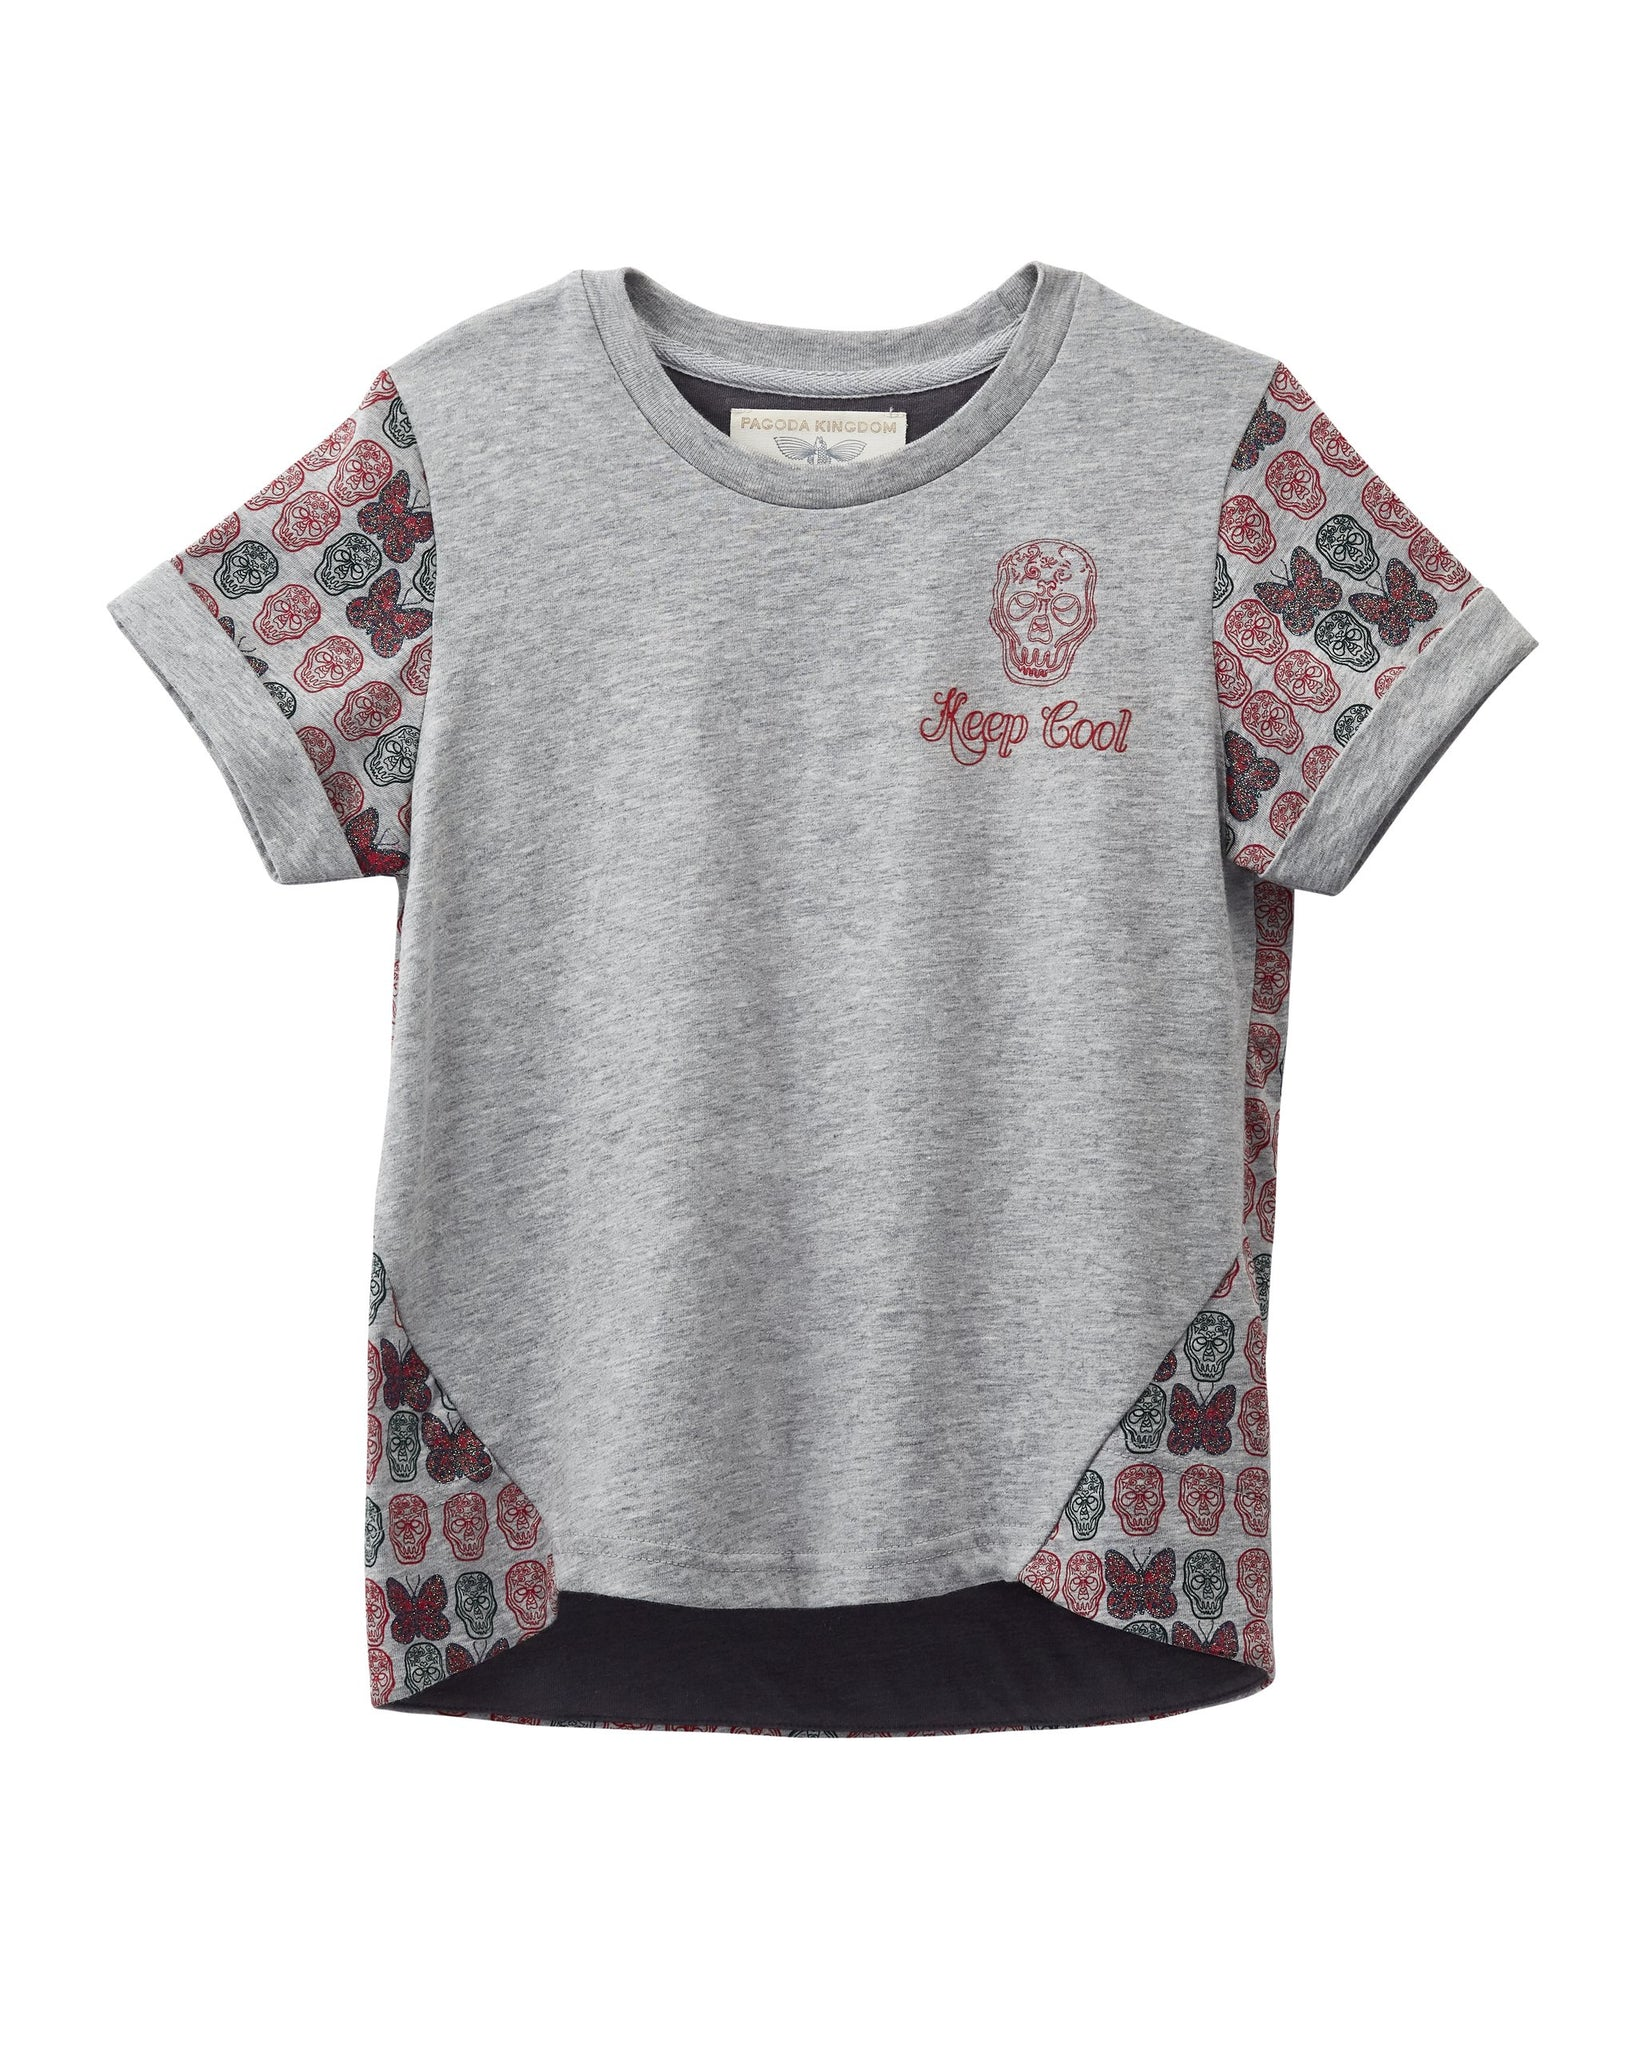 MANO PLUS | Pagoda Kingdom | Keep Cool Skull T-Shirt